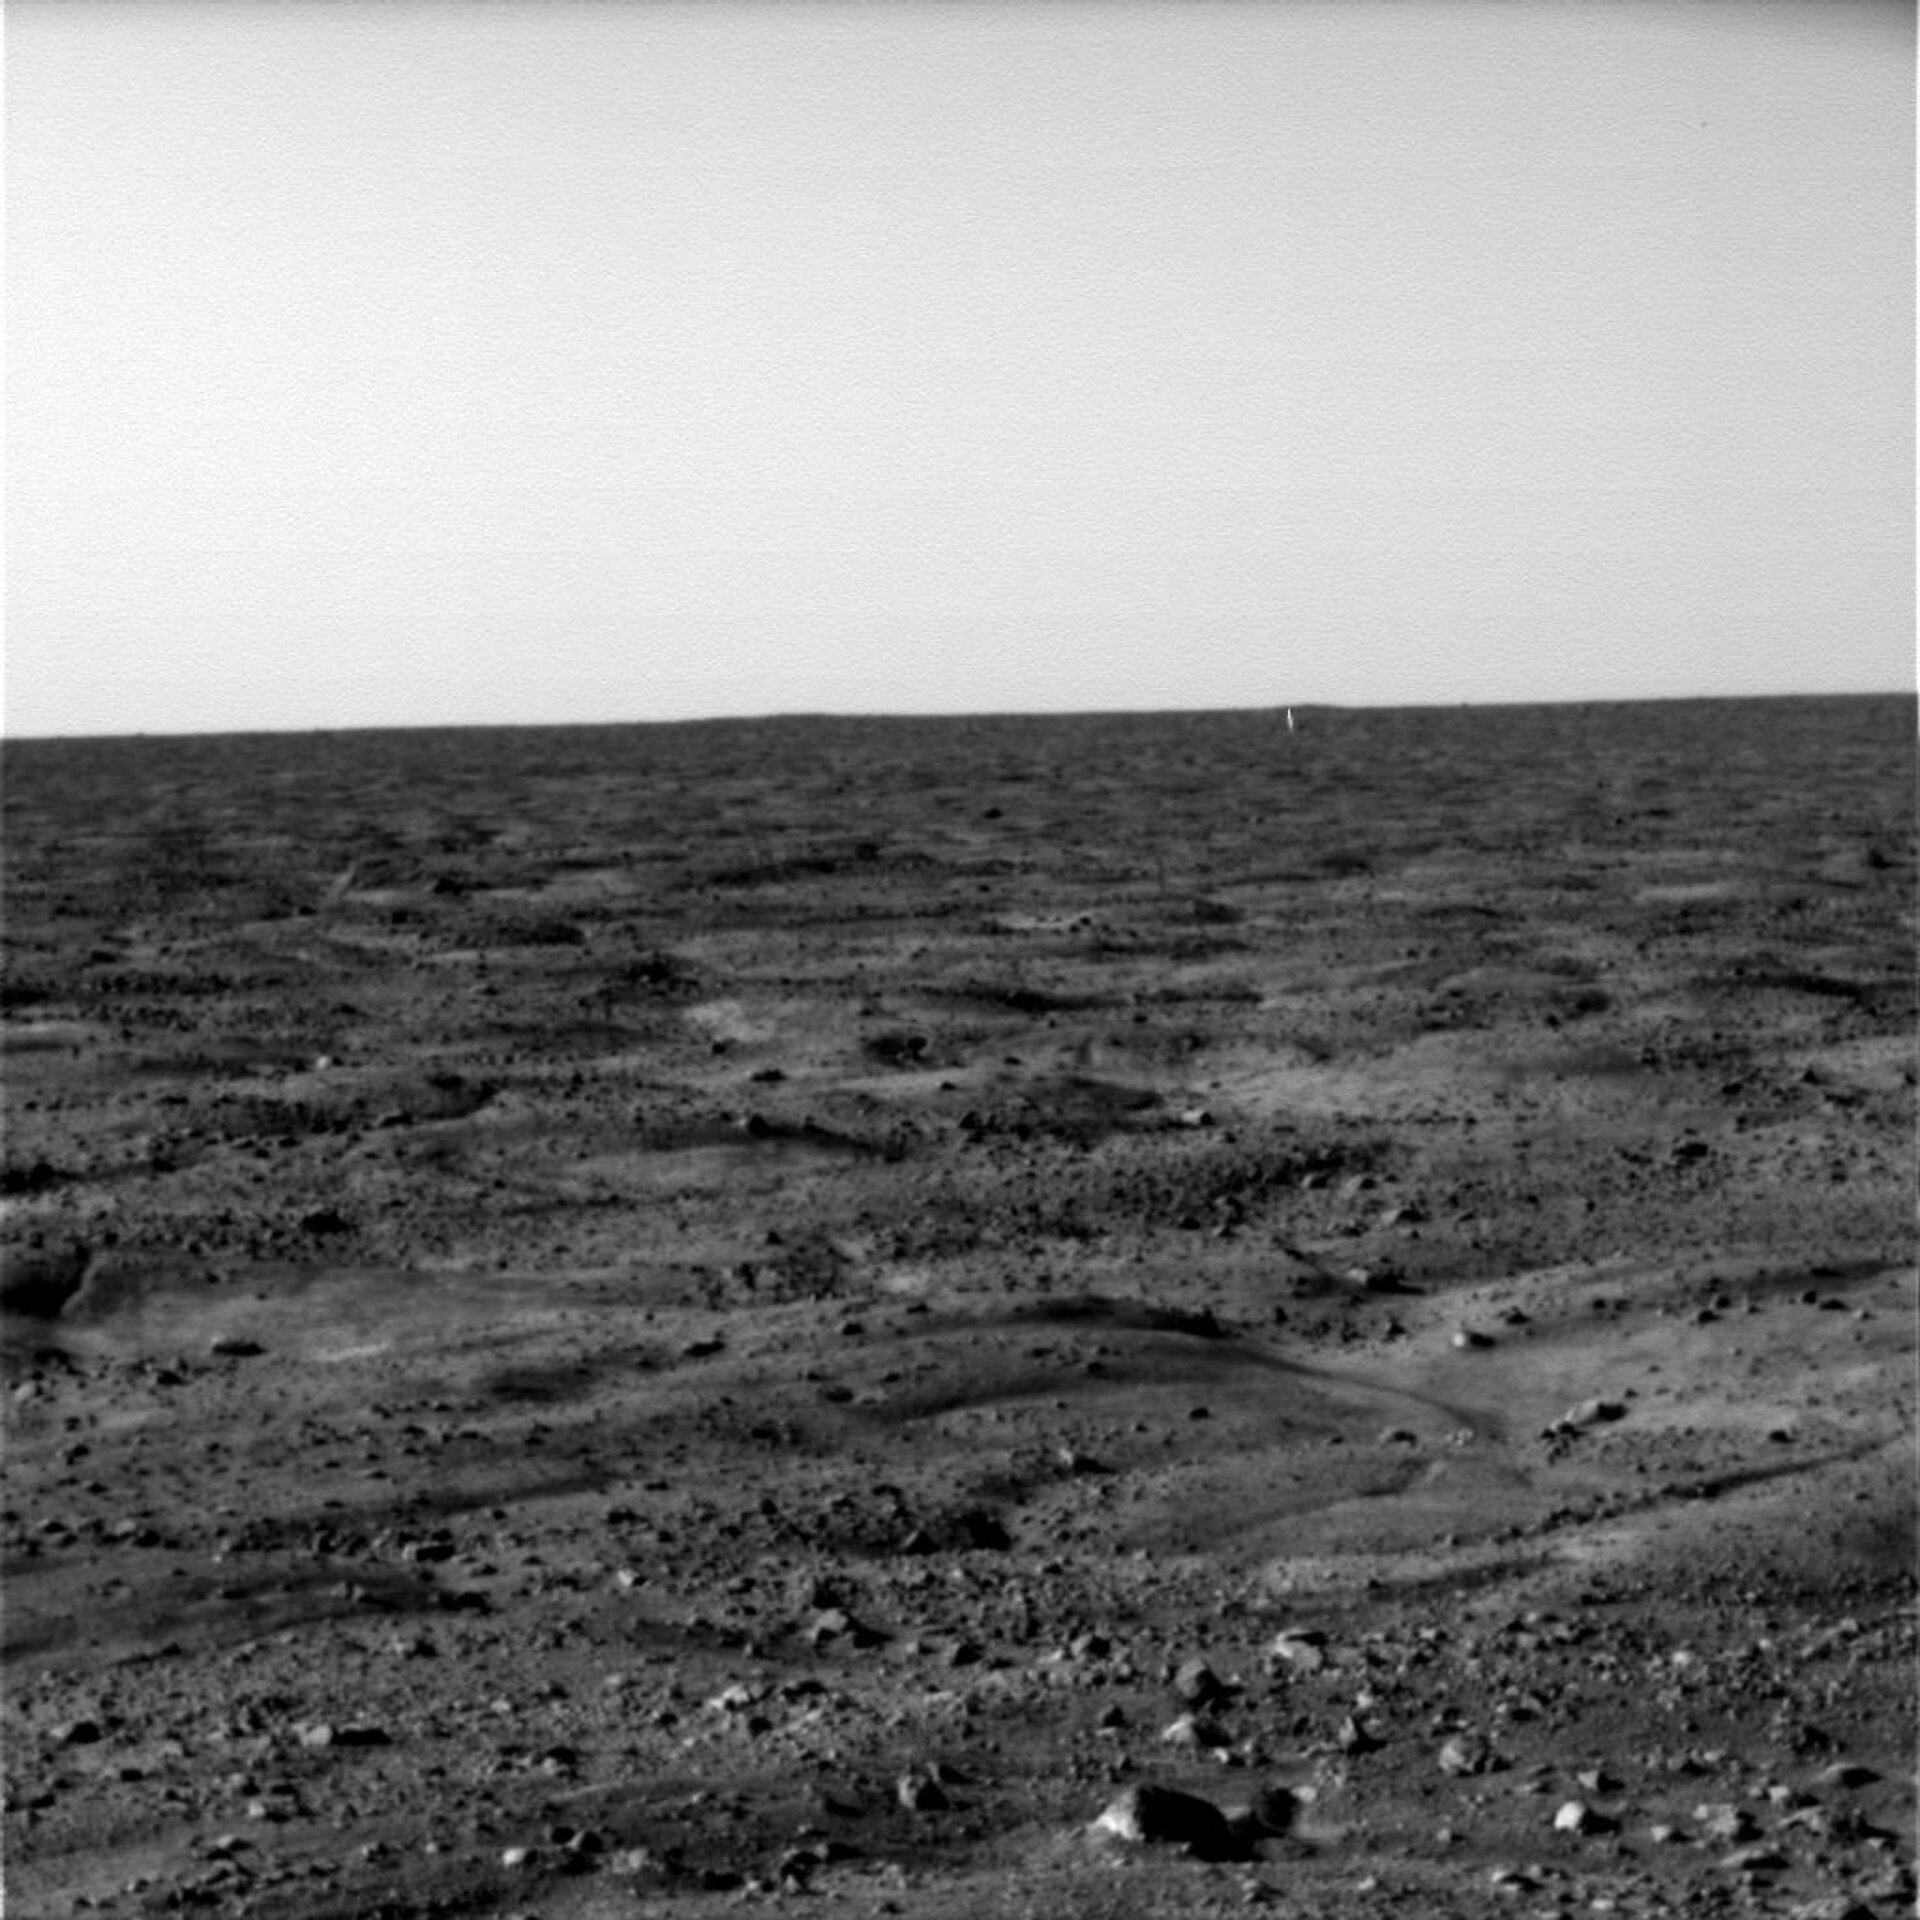 The martian surface, seen by Phoenix